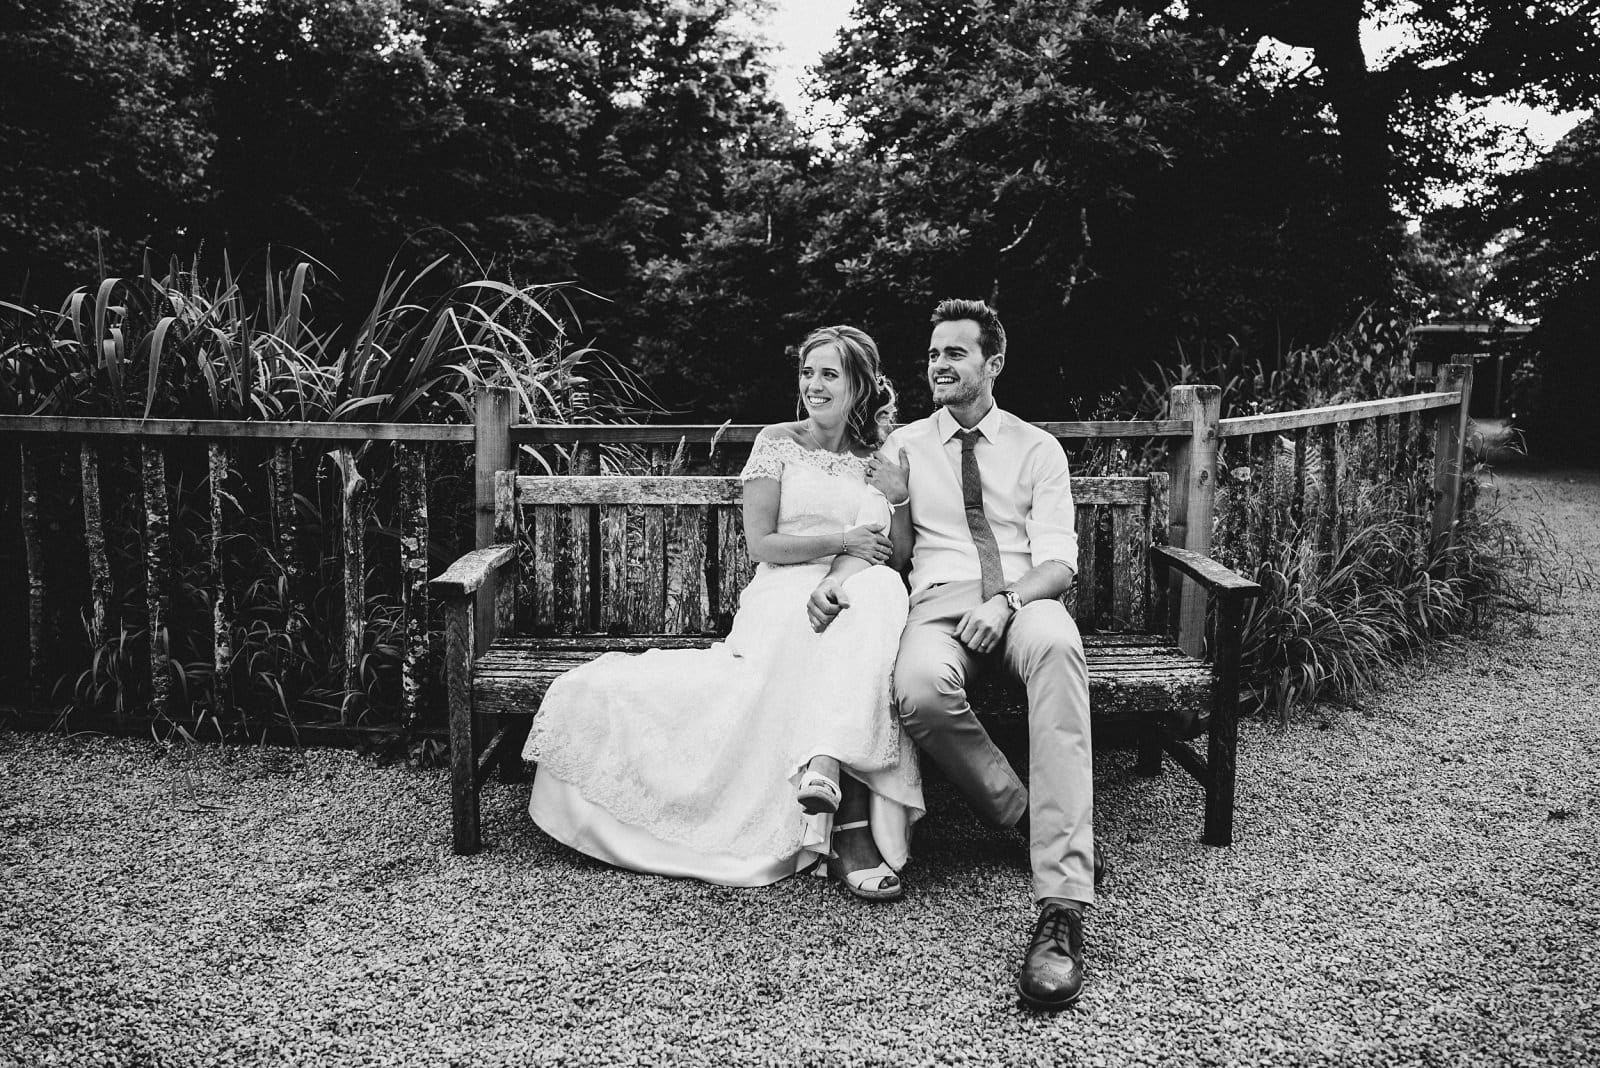 The bride and groom relaxing in front of the lake on their wedding day at Nancarrow Farm